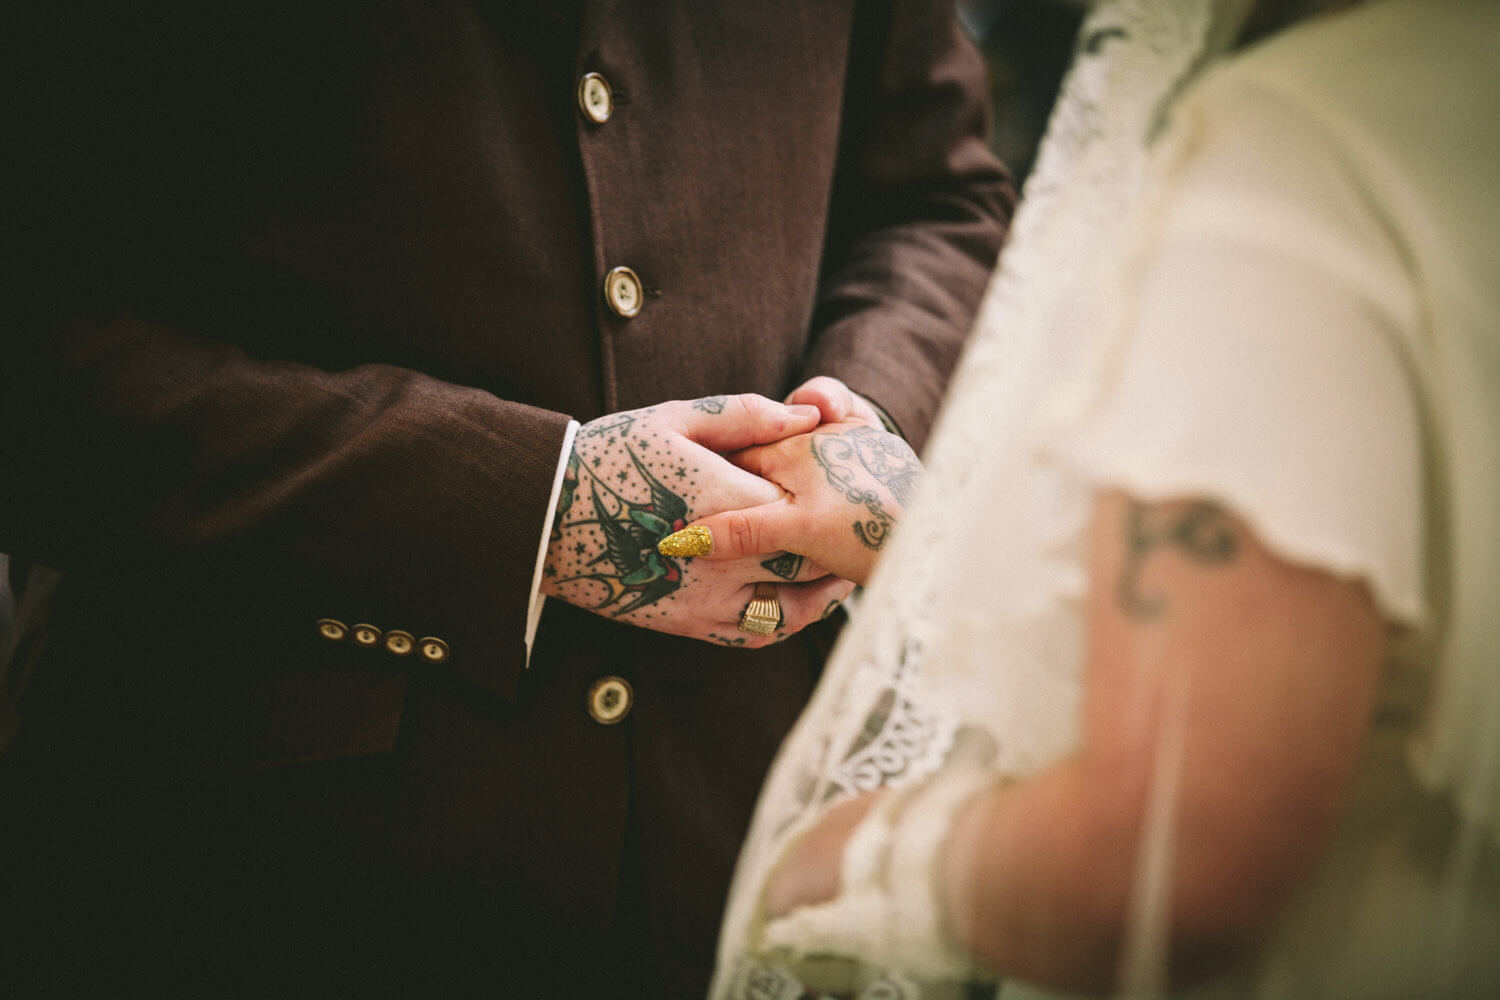 close up of tattoo hands at wedding